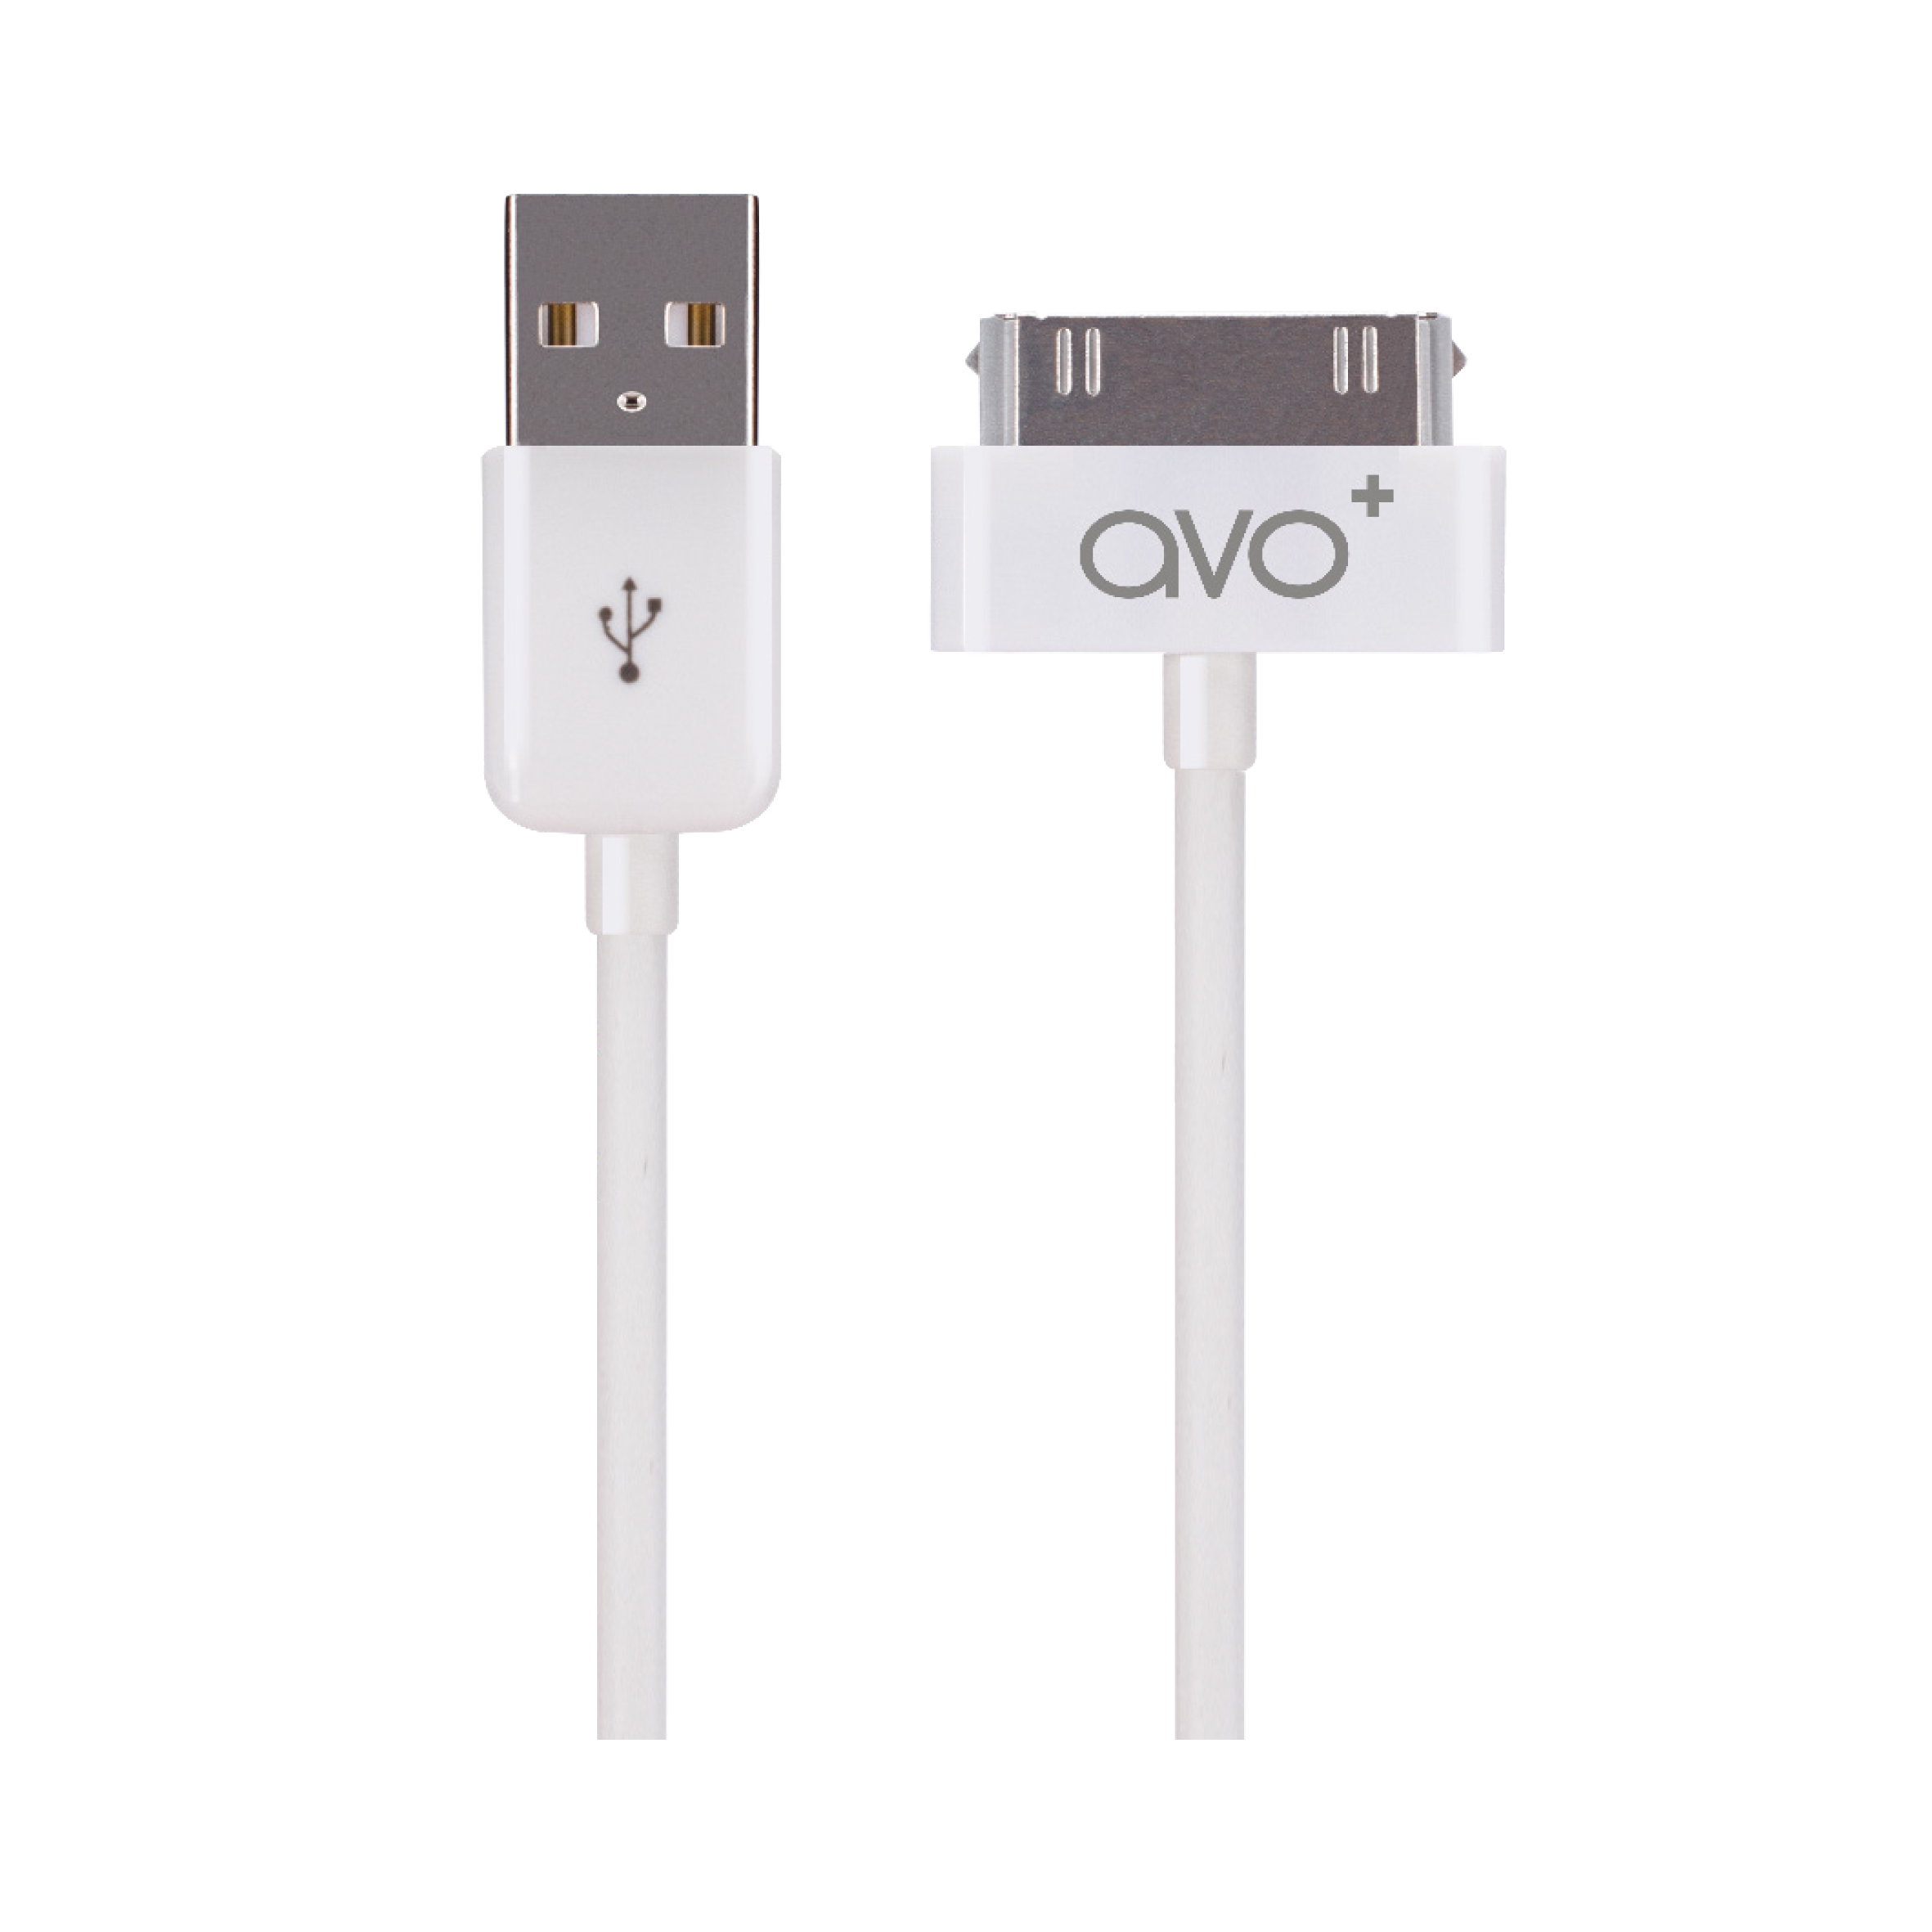 Billede af AVO+ charge and sync cableApple 30 pin white 1m for iPhone 4/4s white